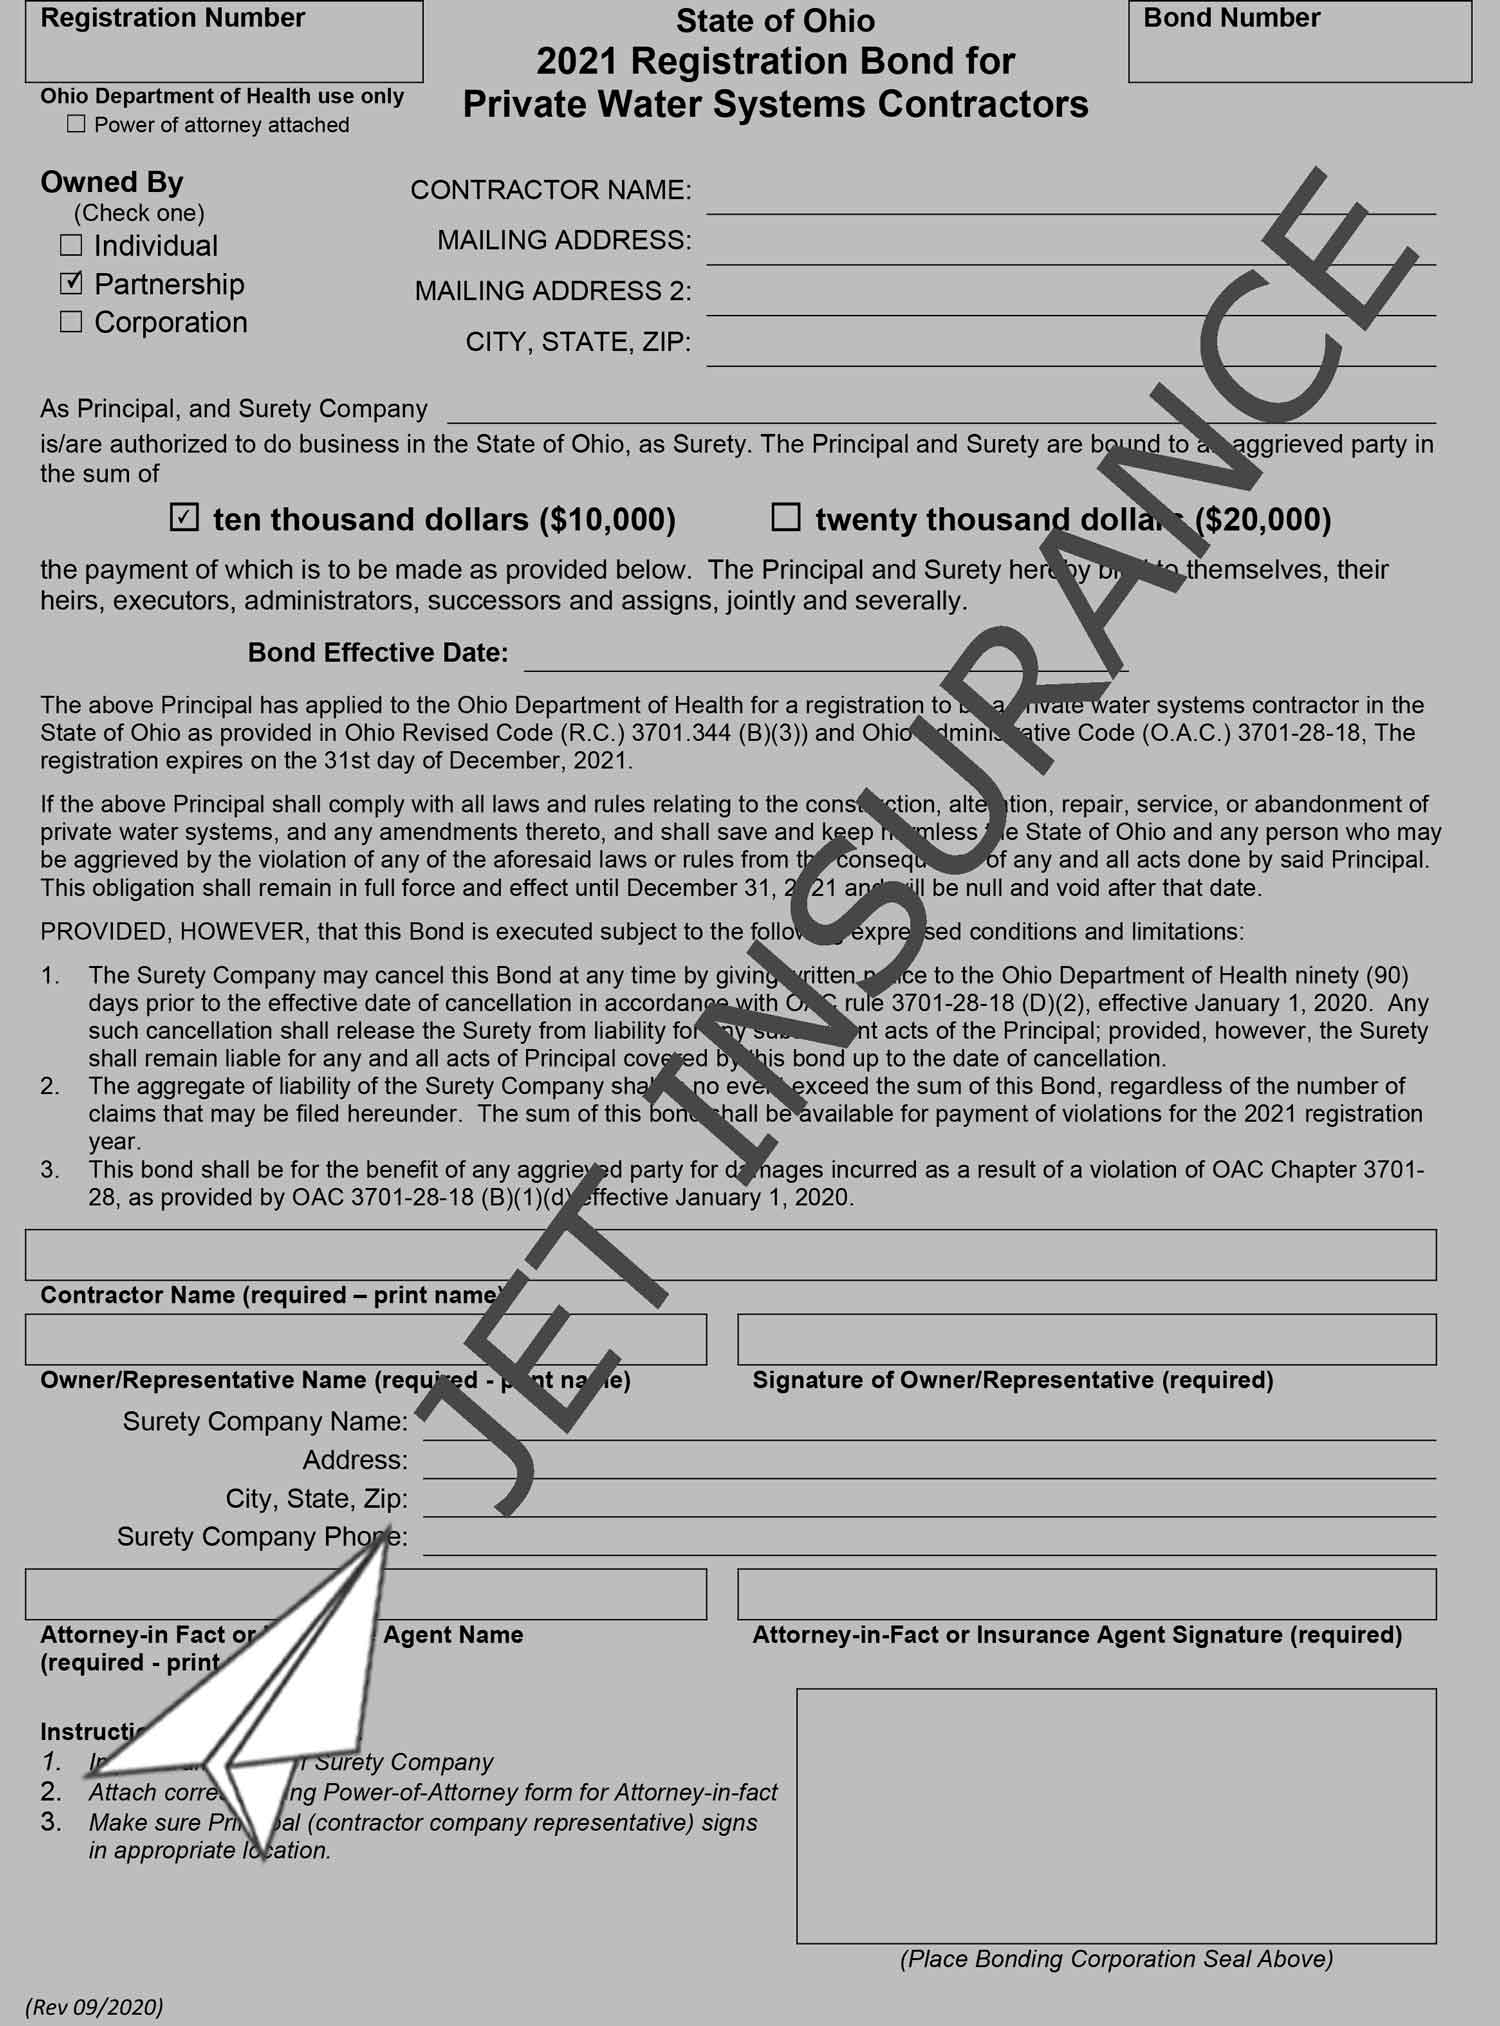 Ohio Private Water System Contractor Bond Form